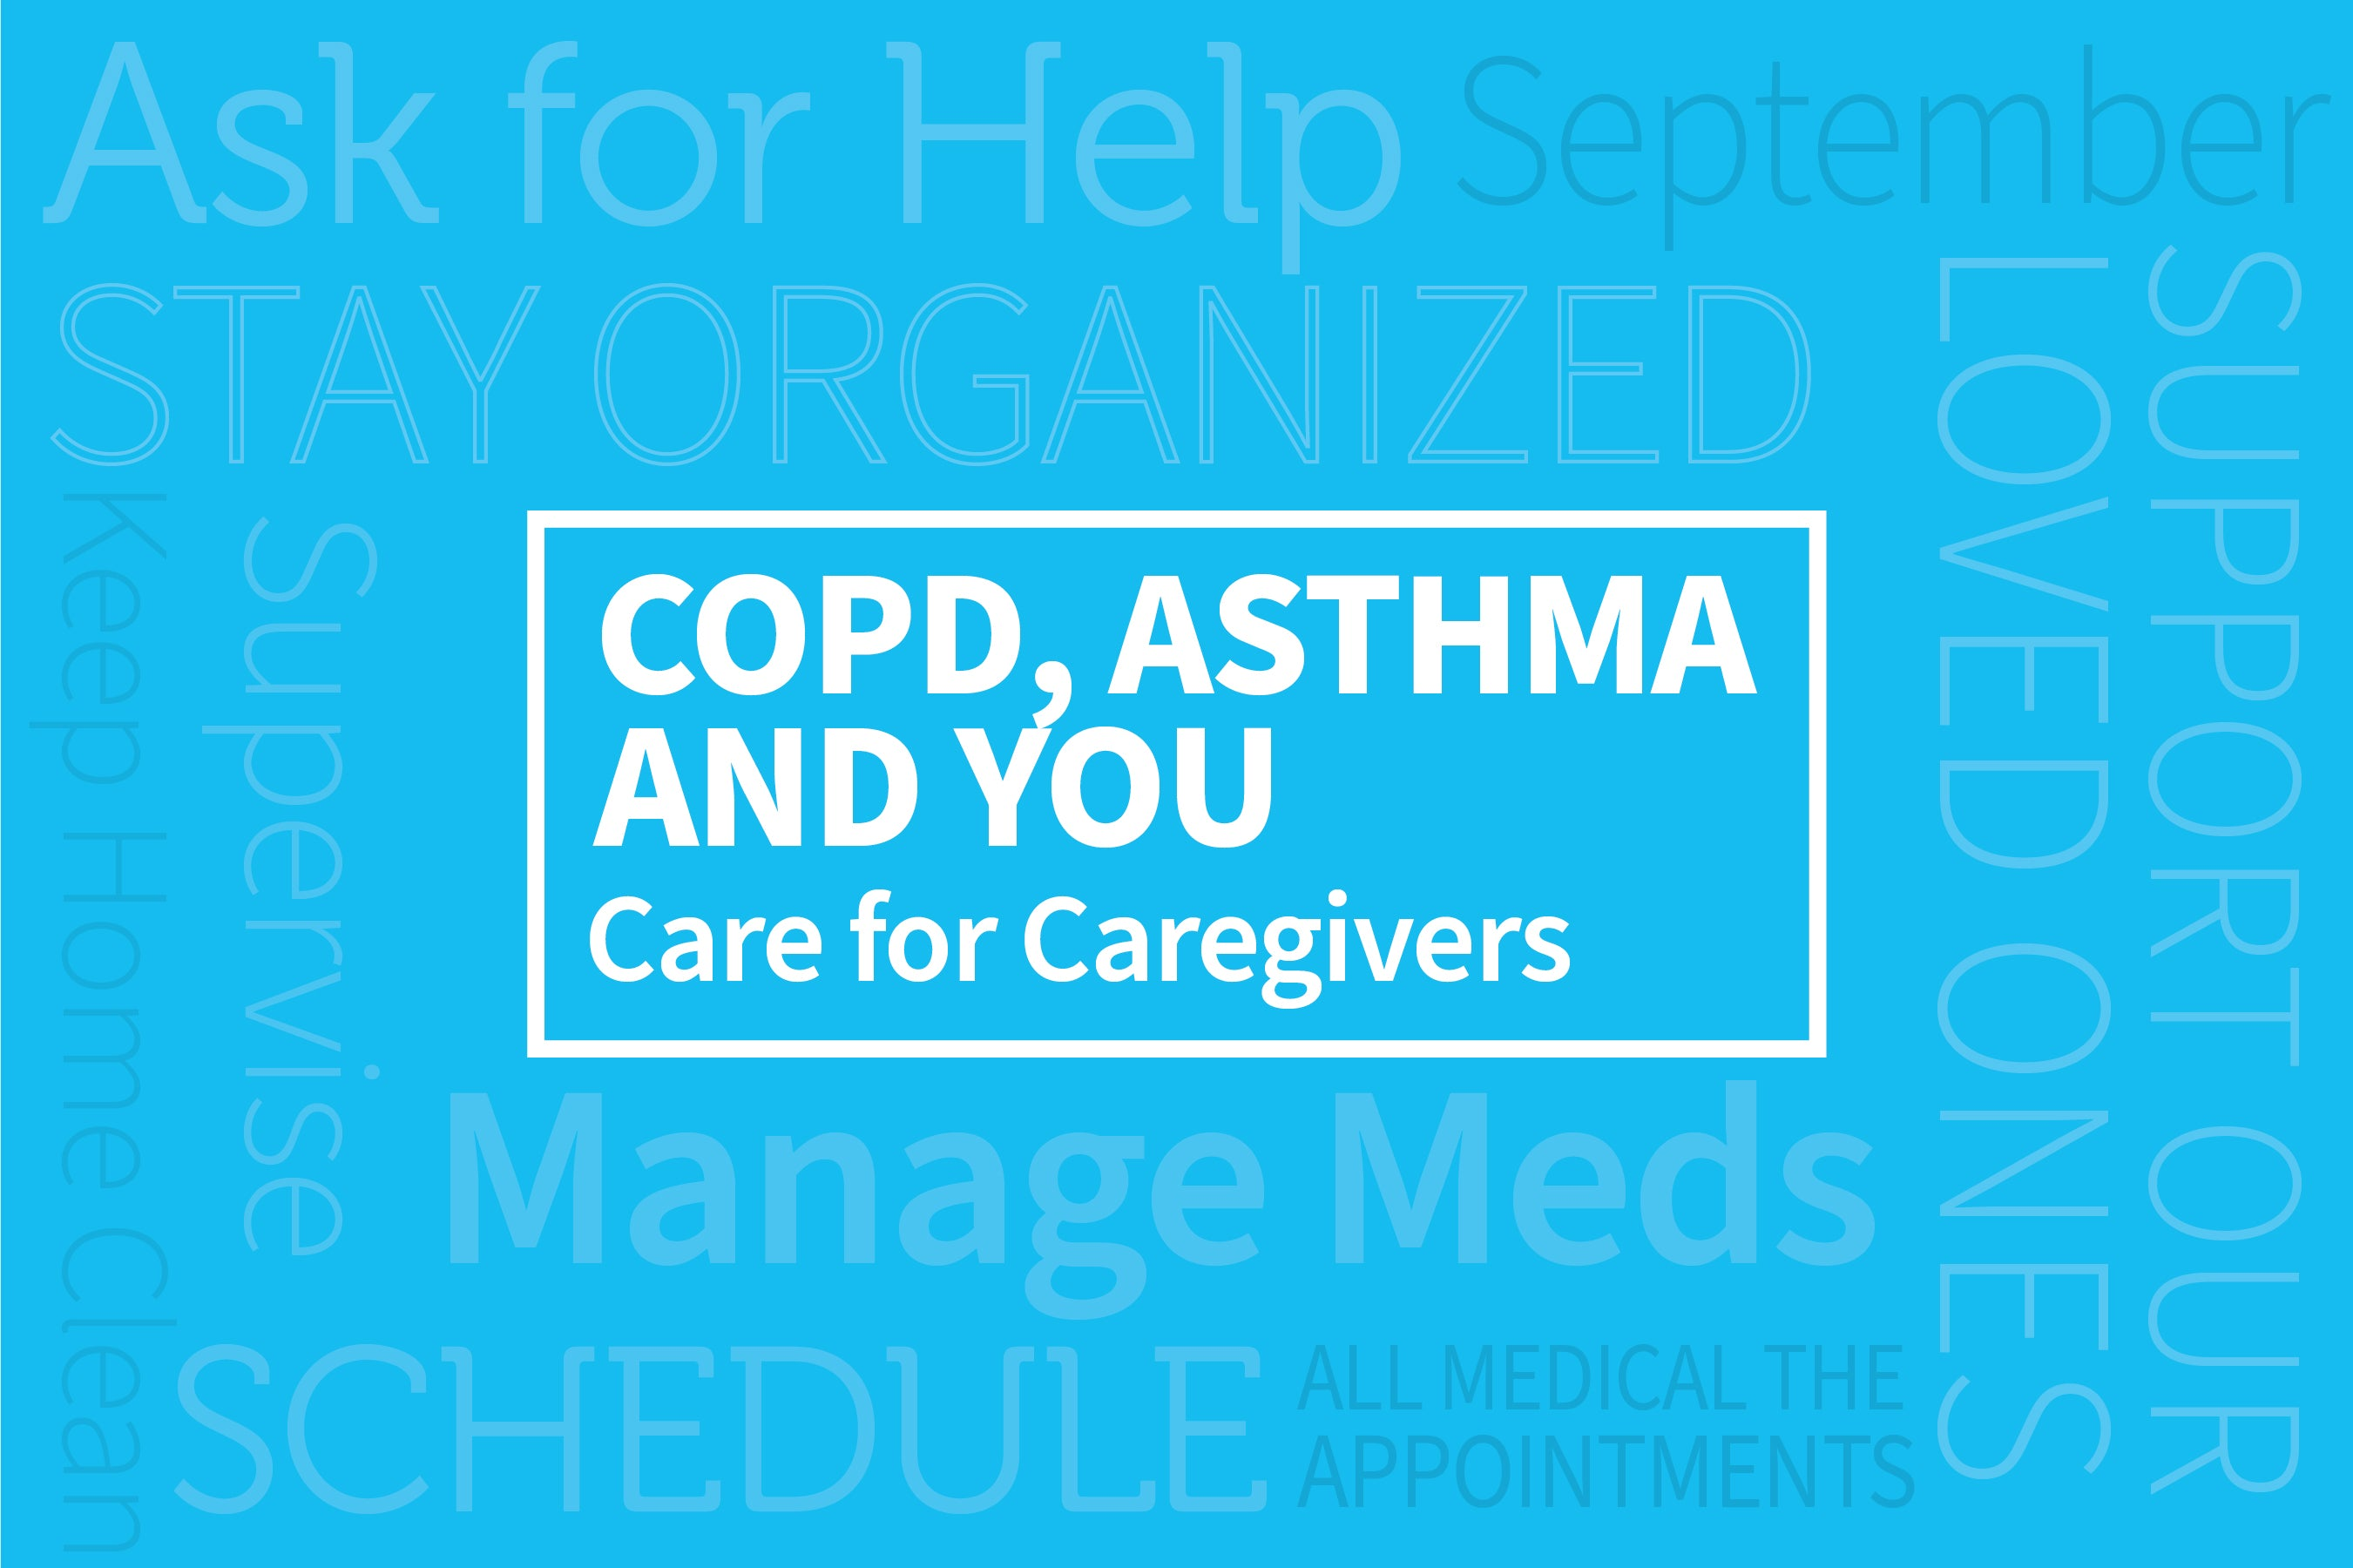 COPD, Asthma, and You: Care for Caregivers